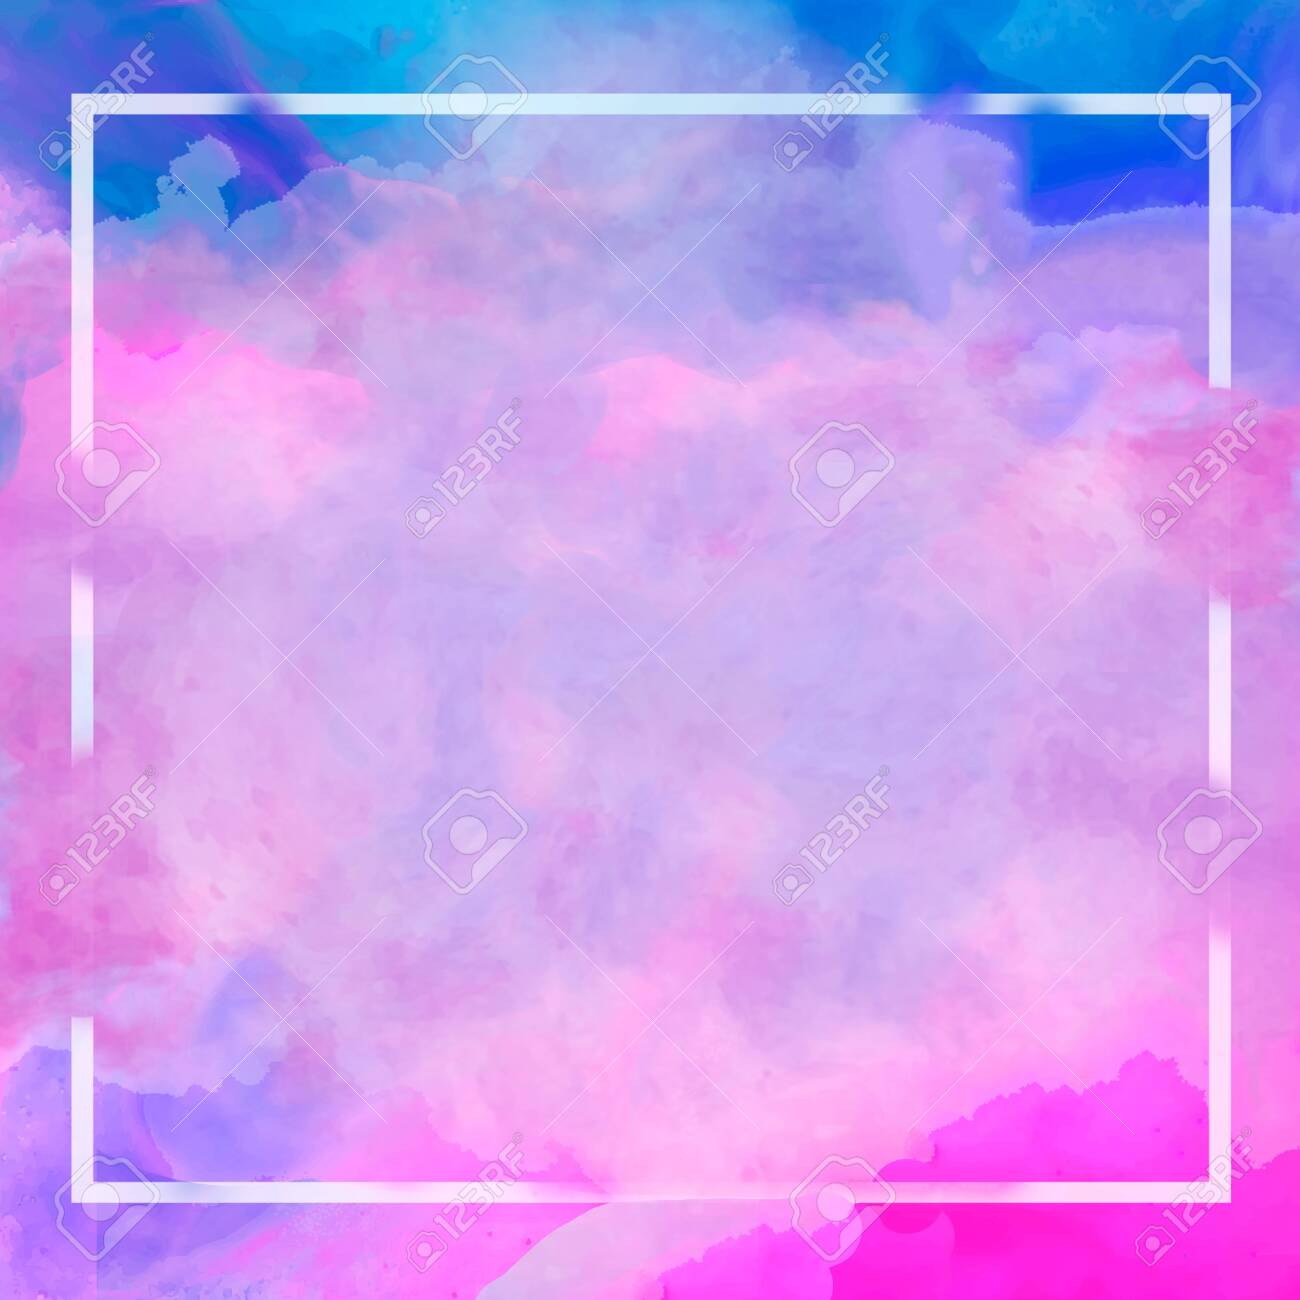 Abstract Purple Blue Pink Pastel Watercolor Frame Border 1300x1300